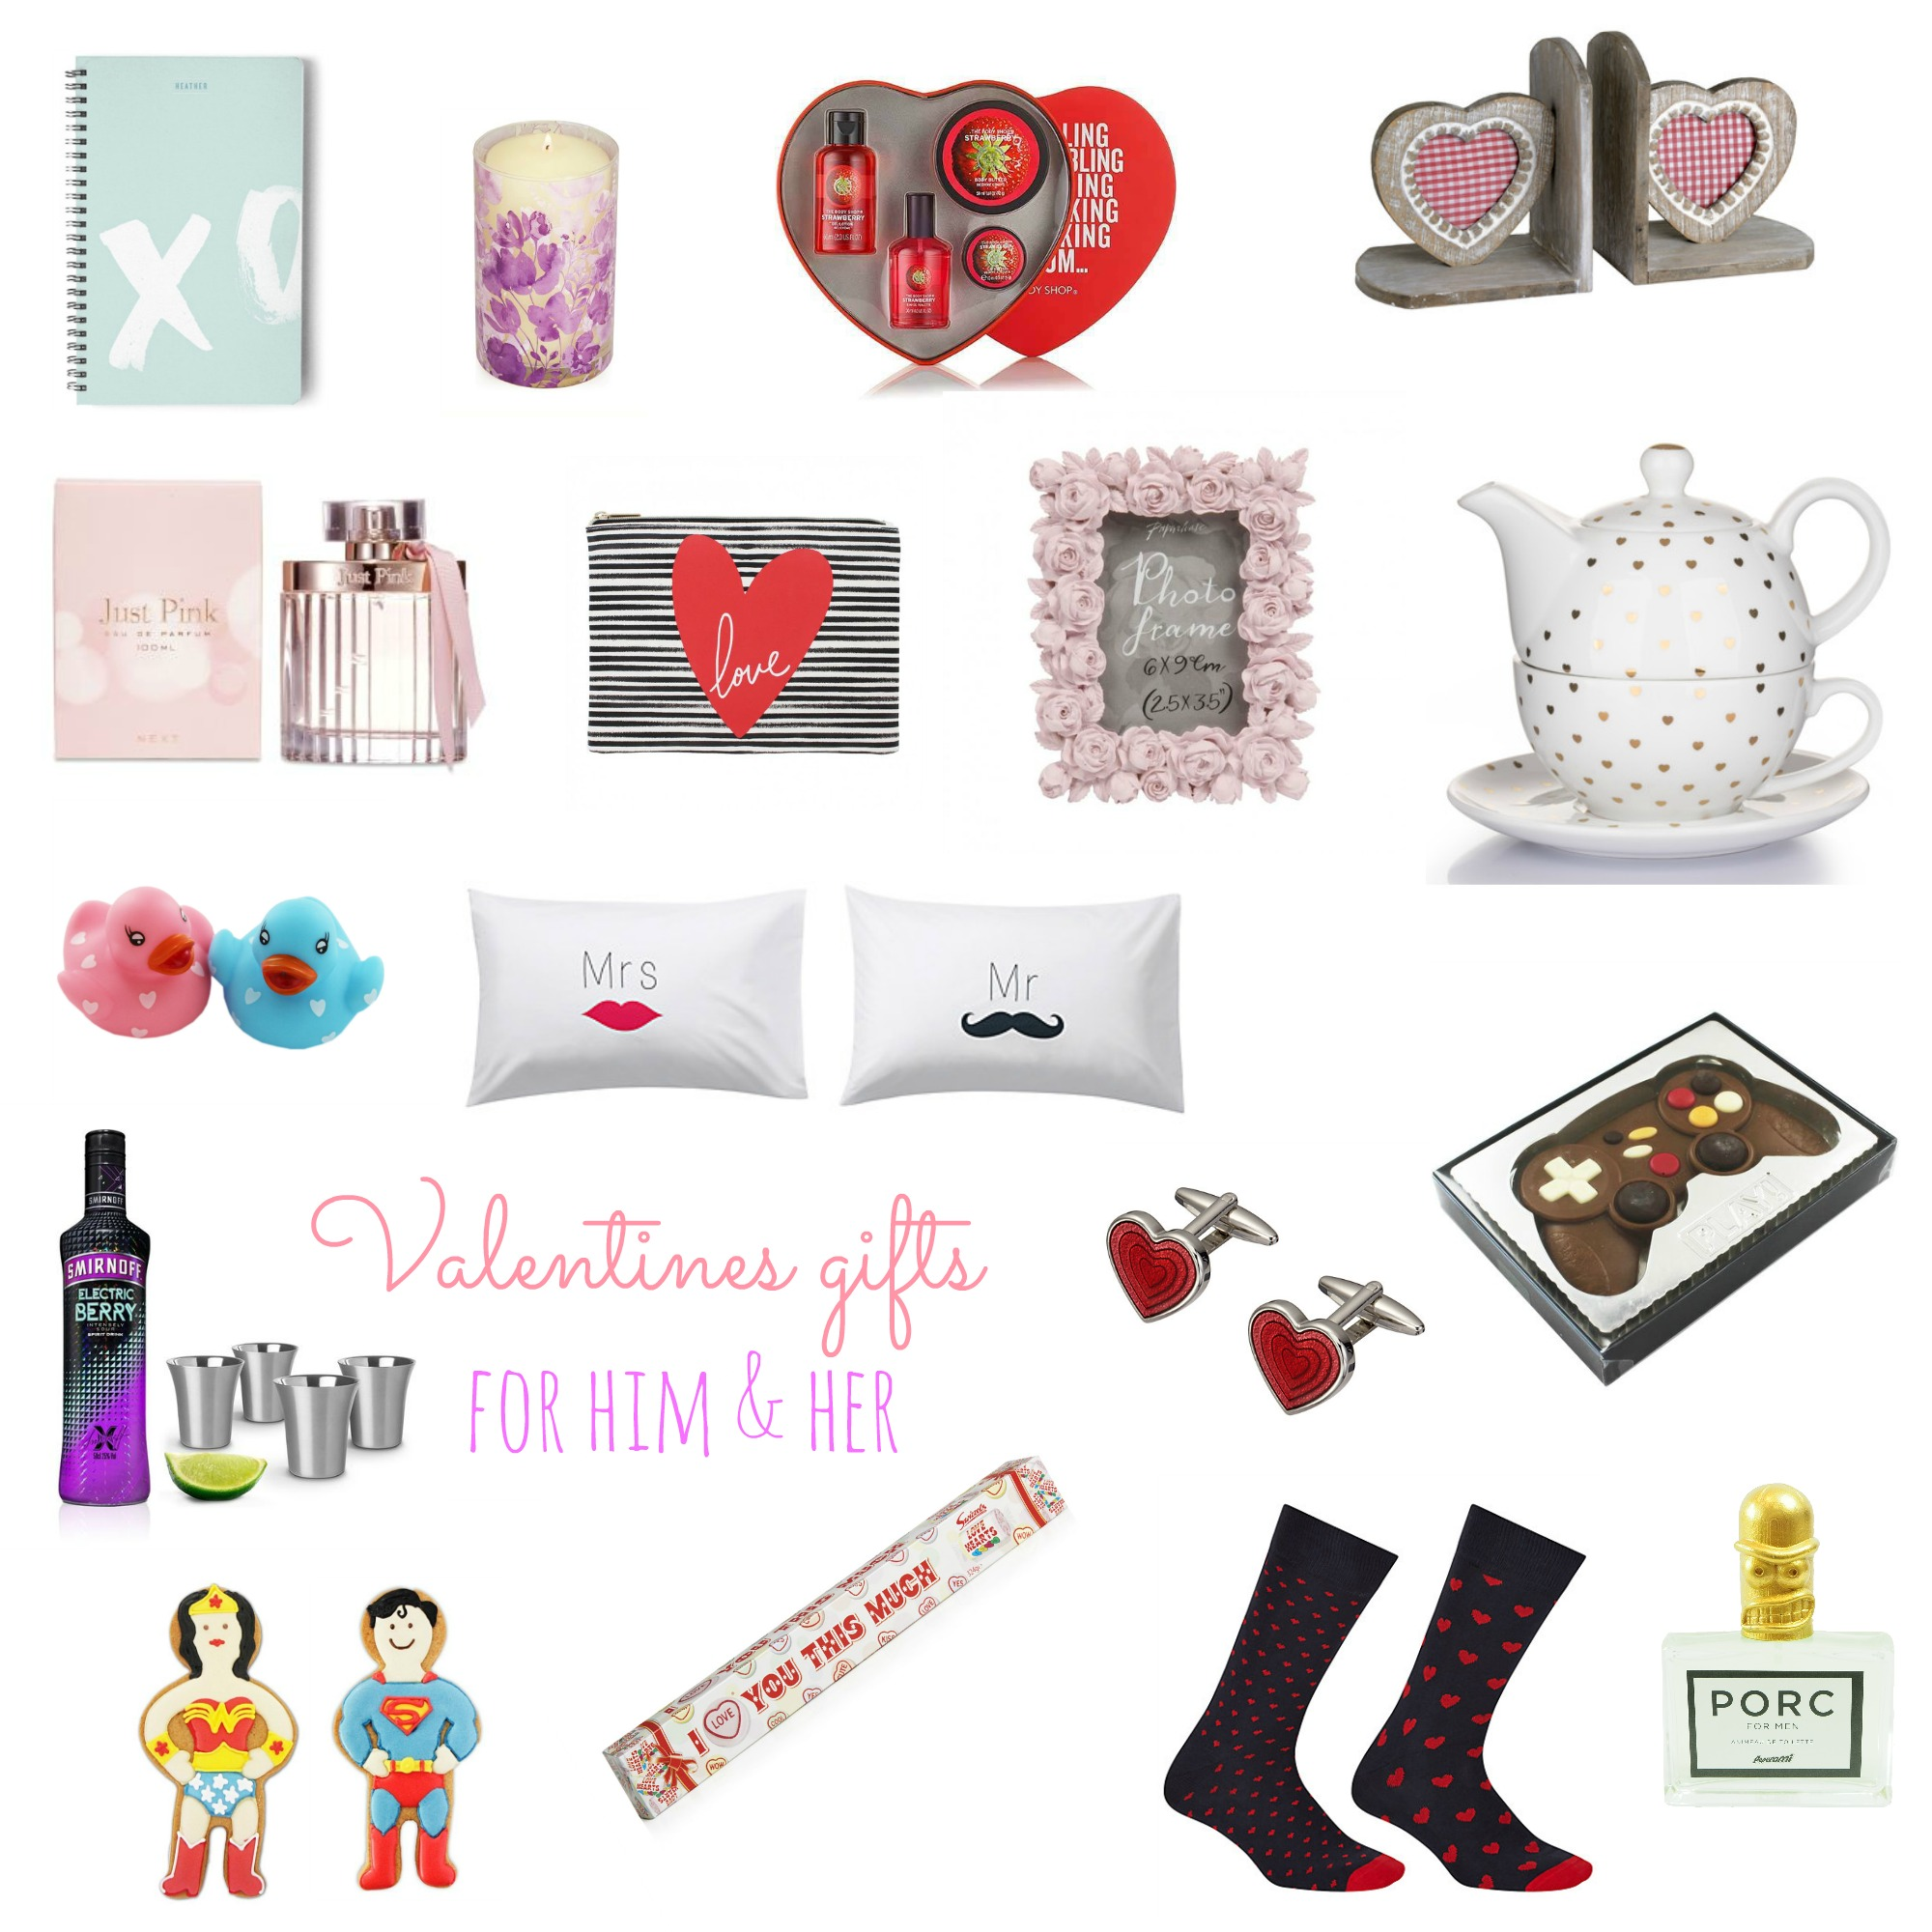 Valentines gifts for him and her on Serenity You